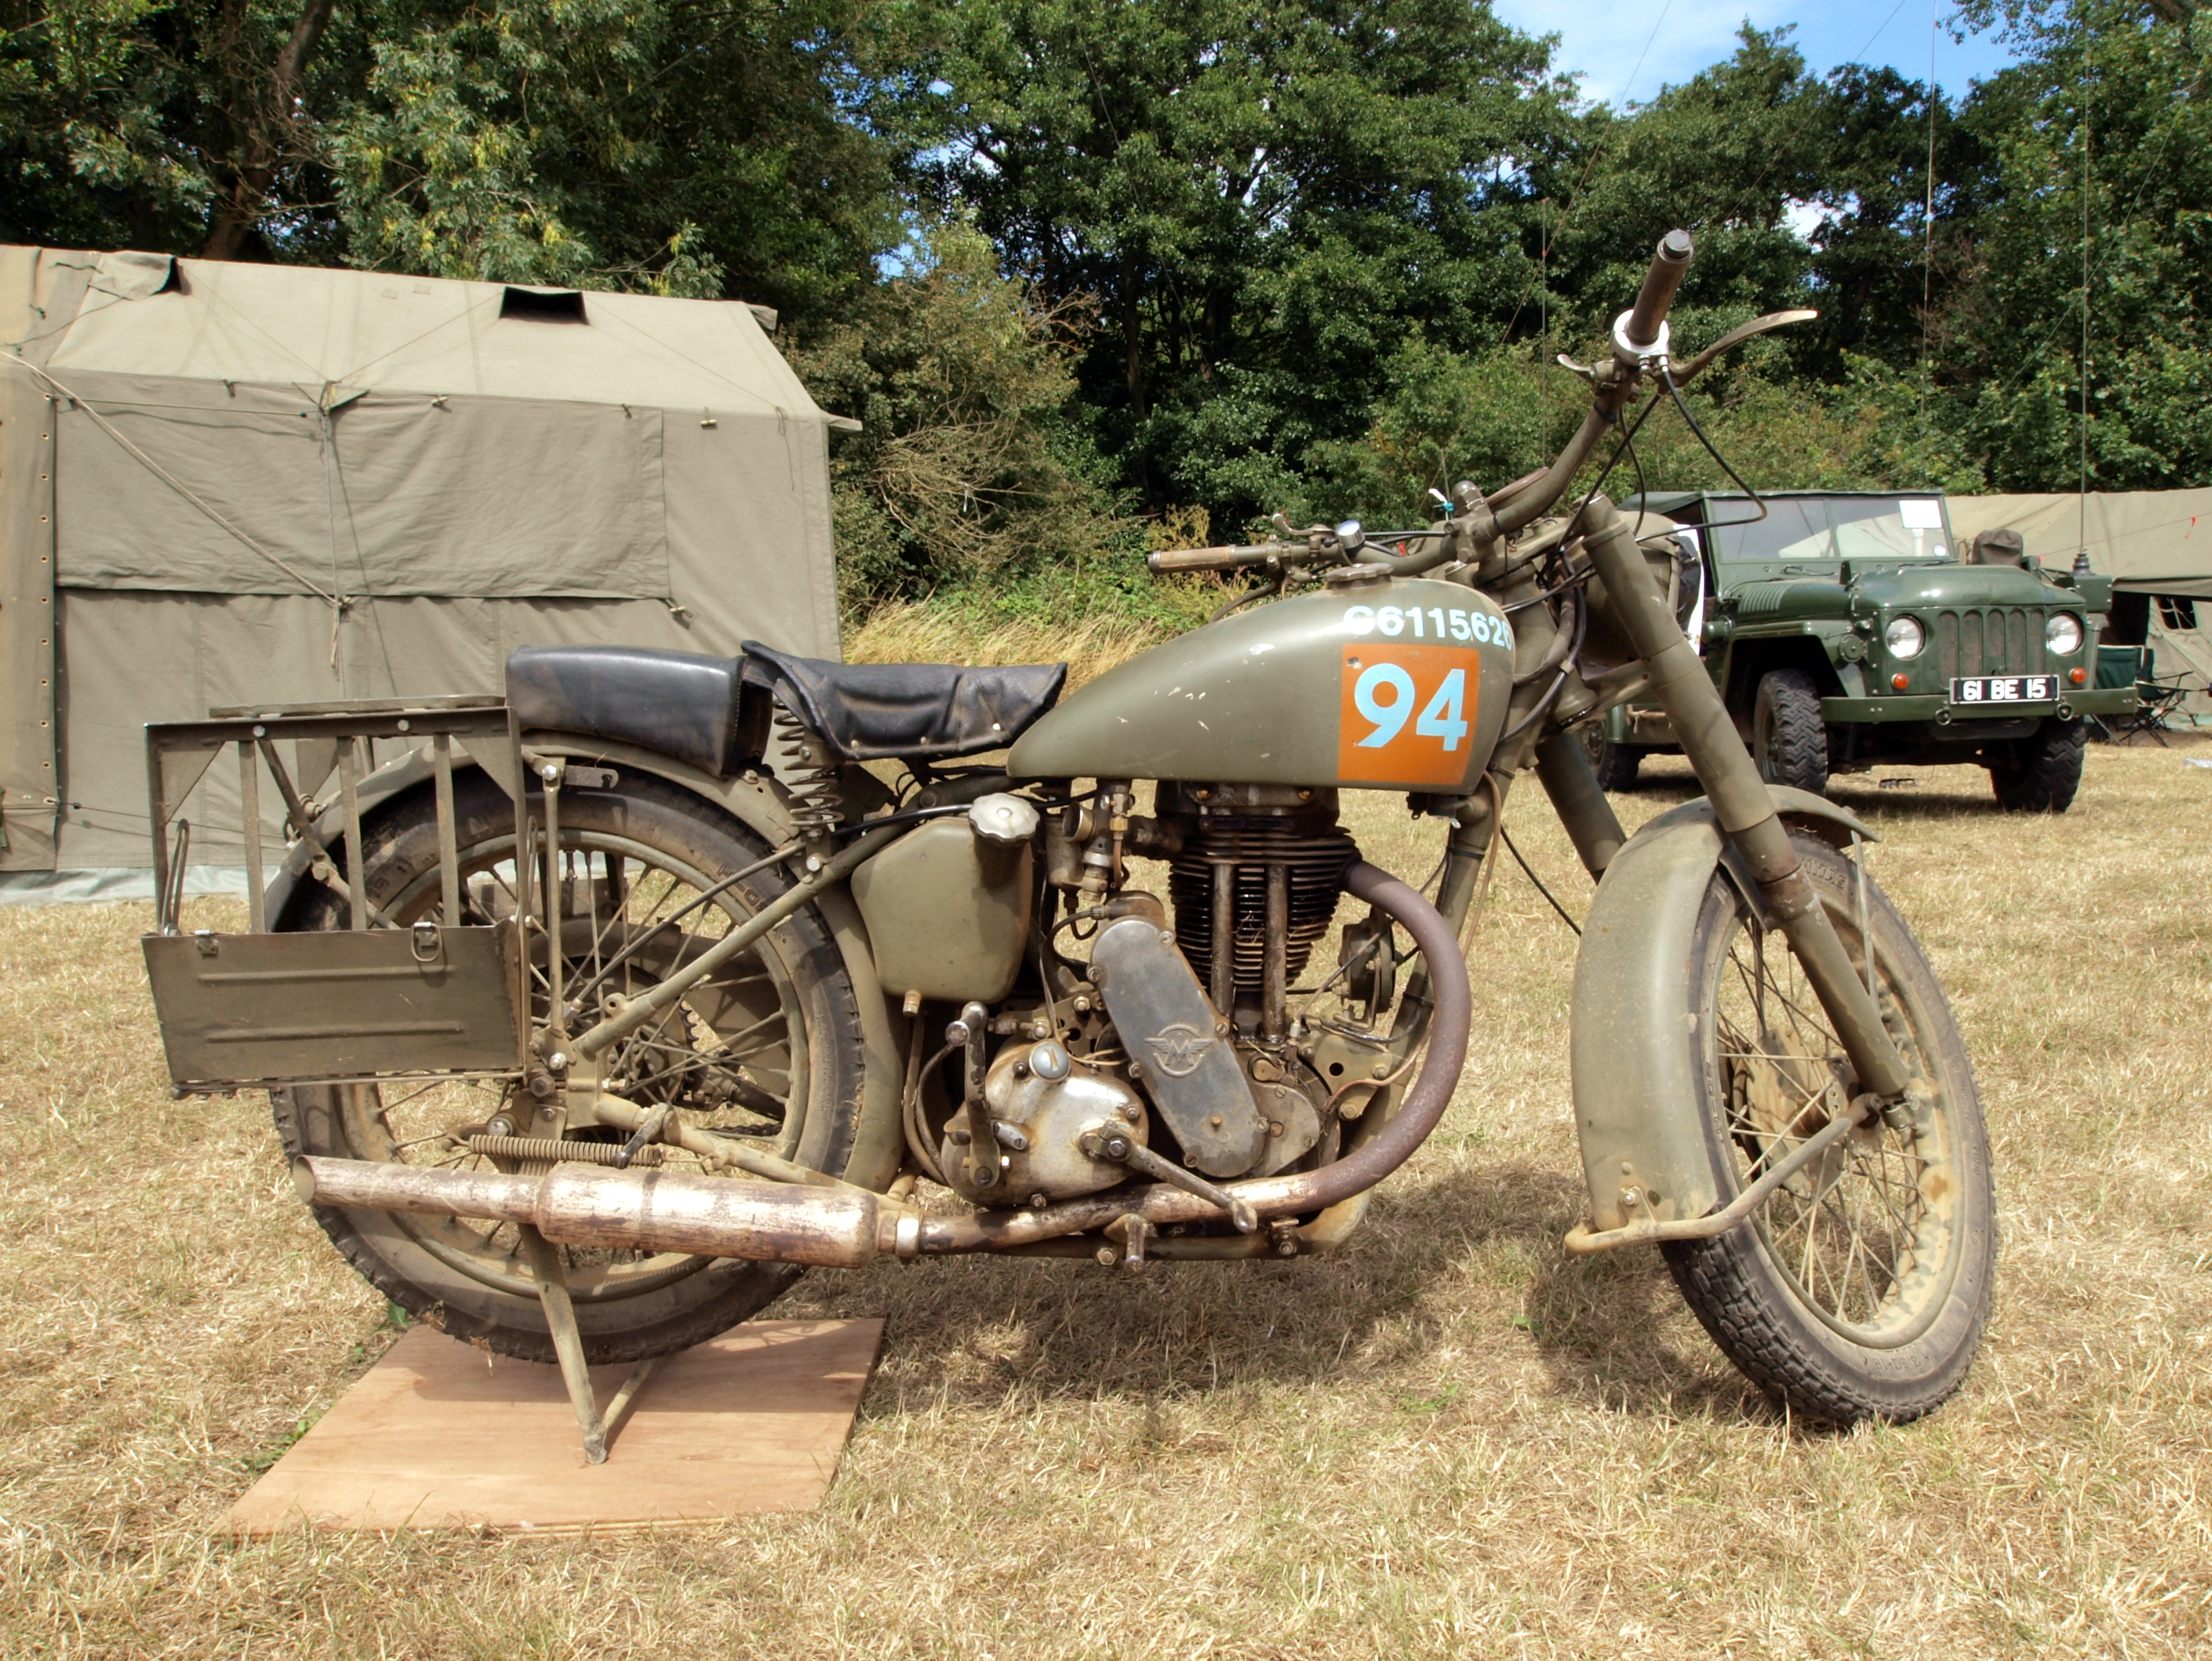 Description Old military Matchless motorcycle, C6115626 pic2.JPG